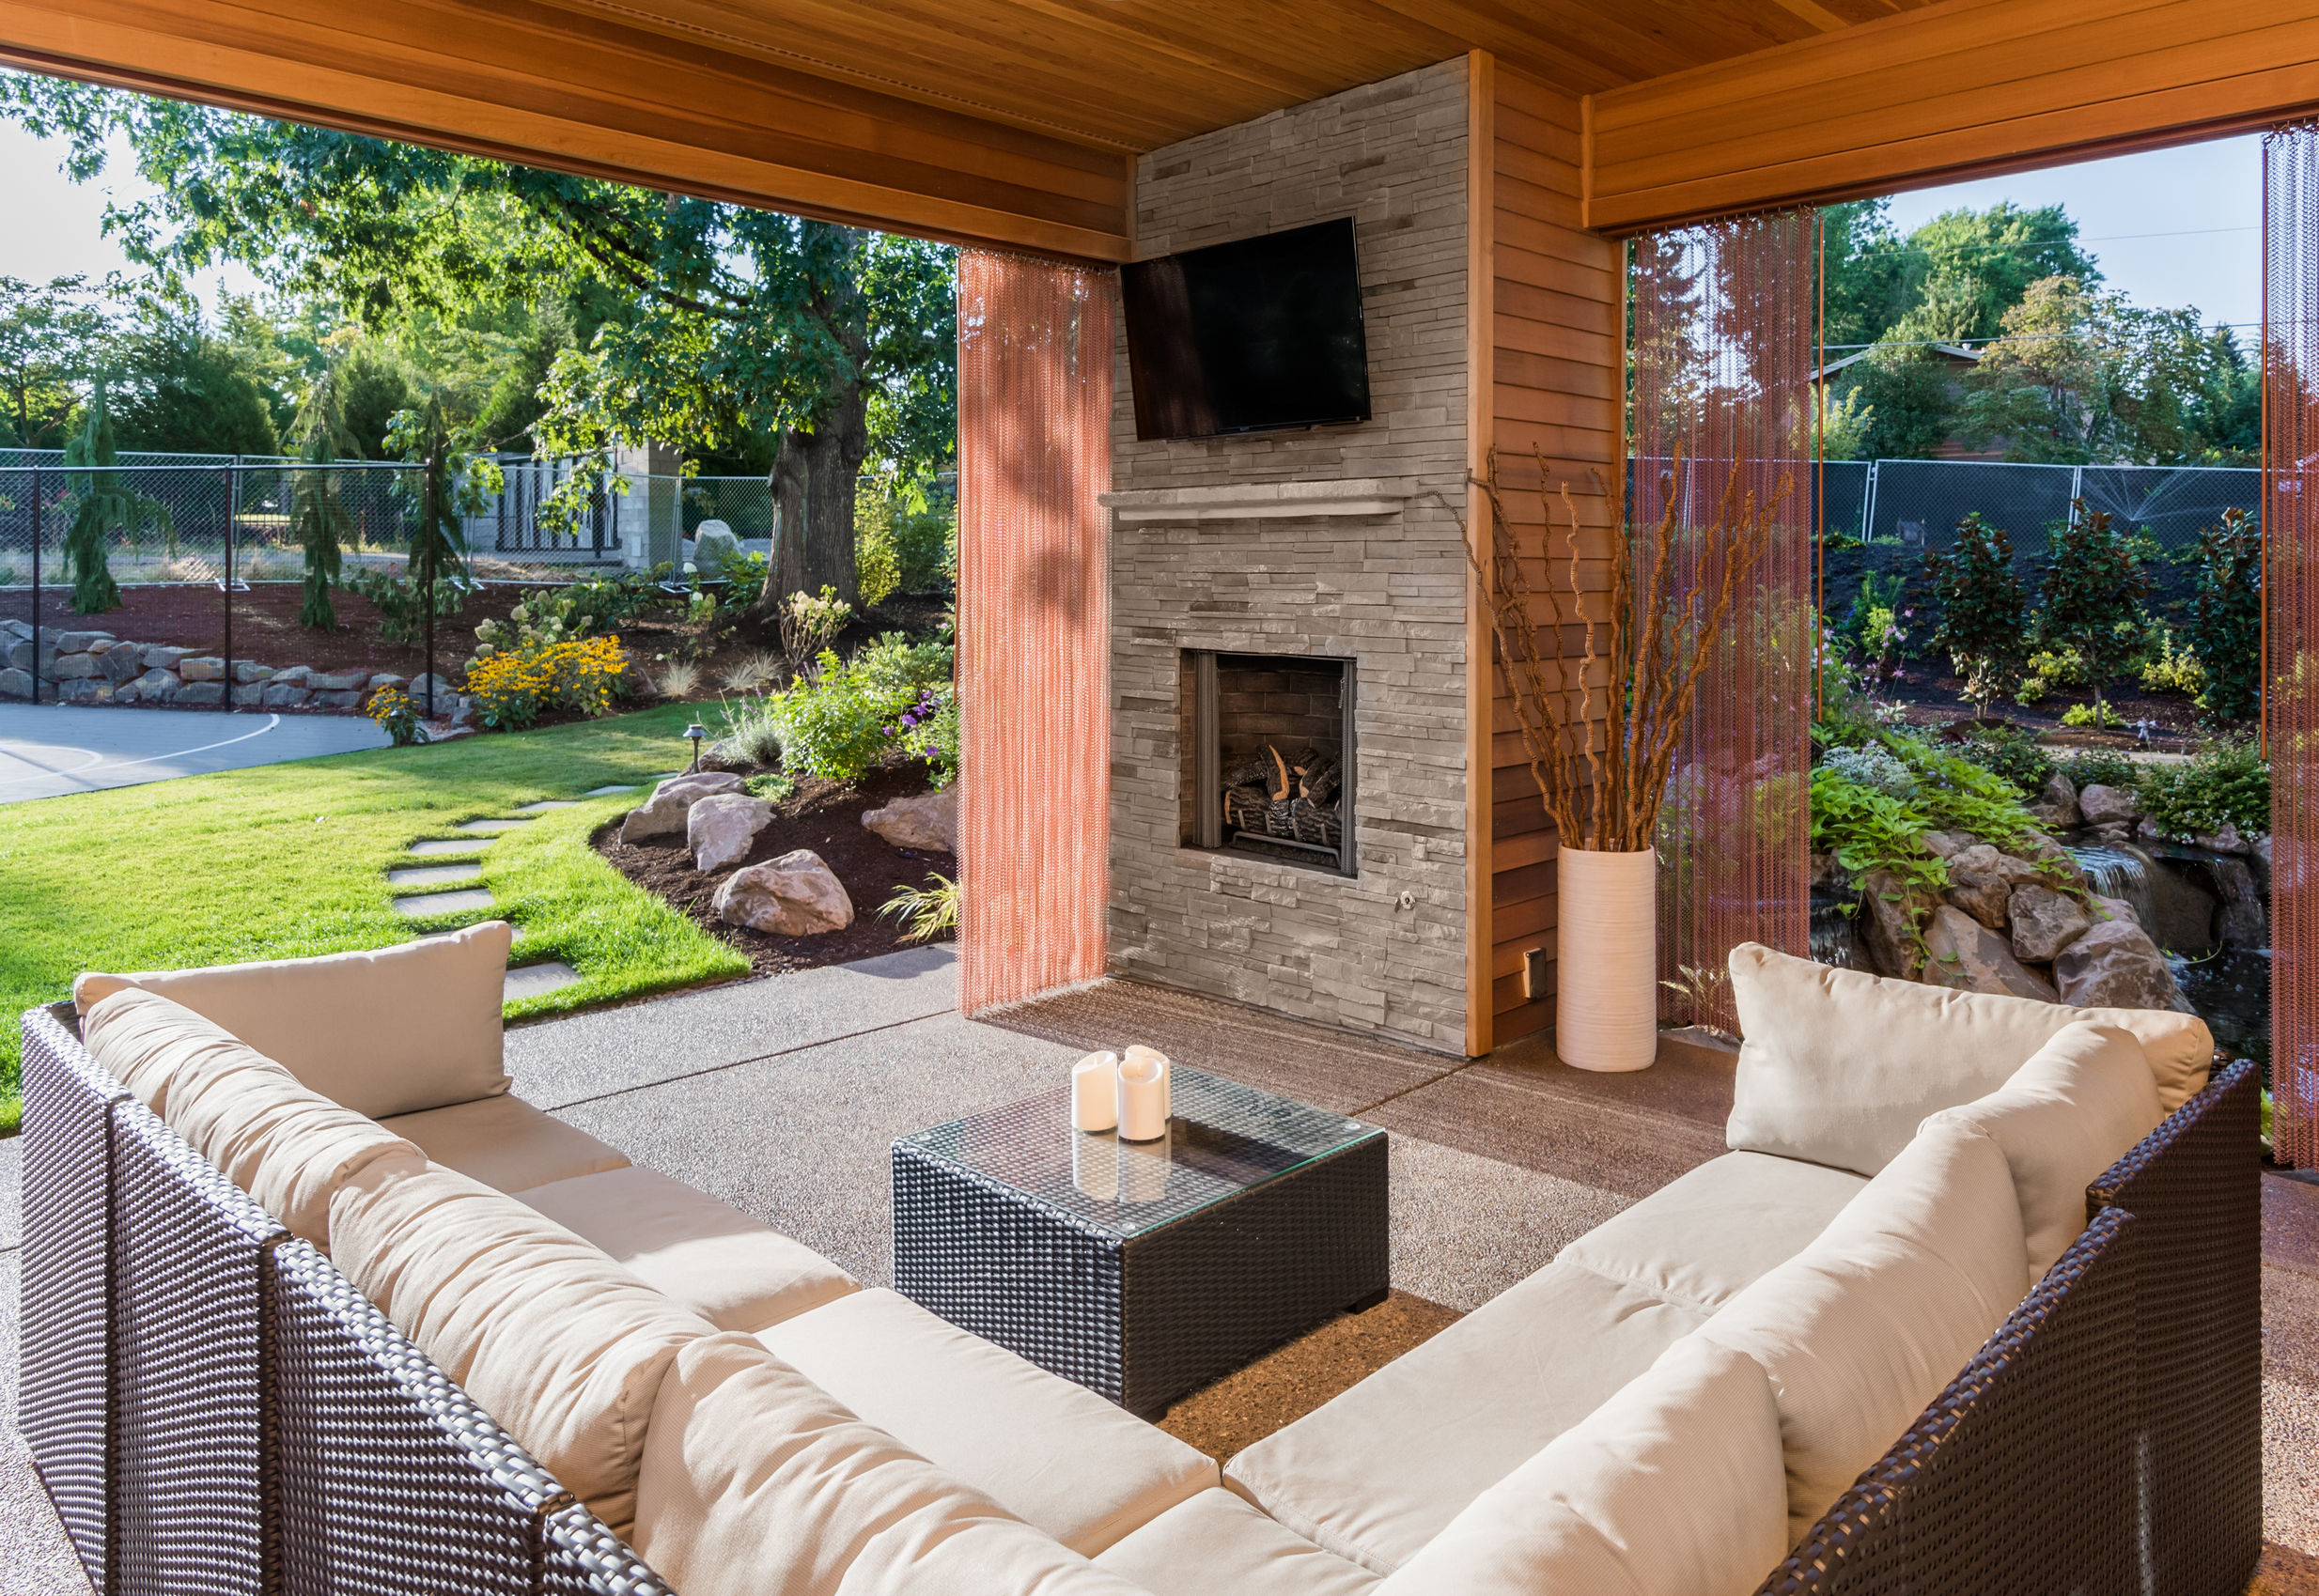 Backyard Ideas For Your New Home Hayden Homes Blog pertaining to New Backyard Ideas